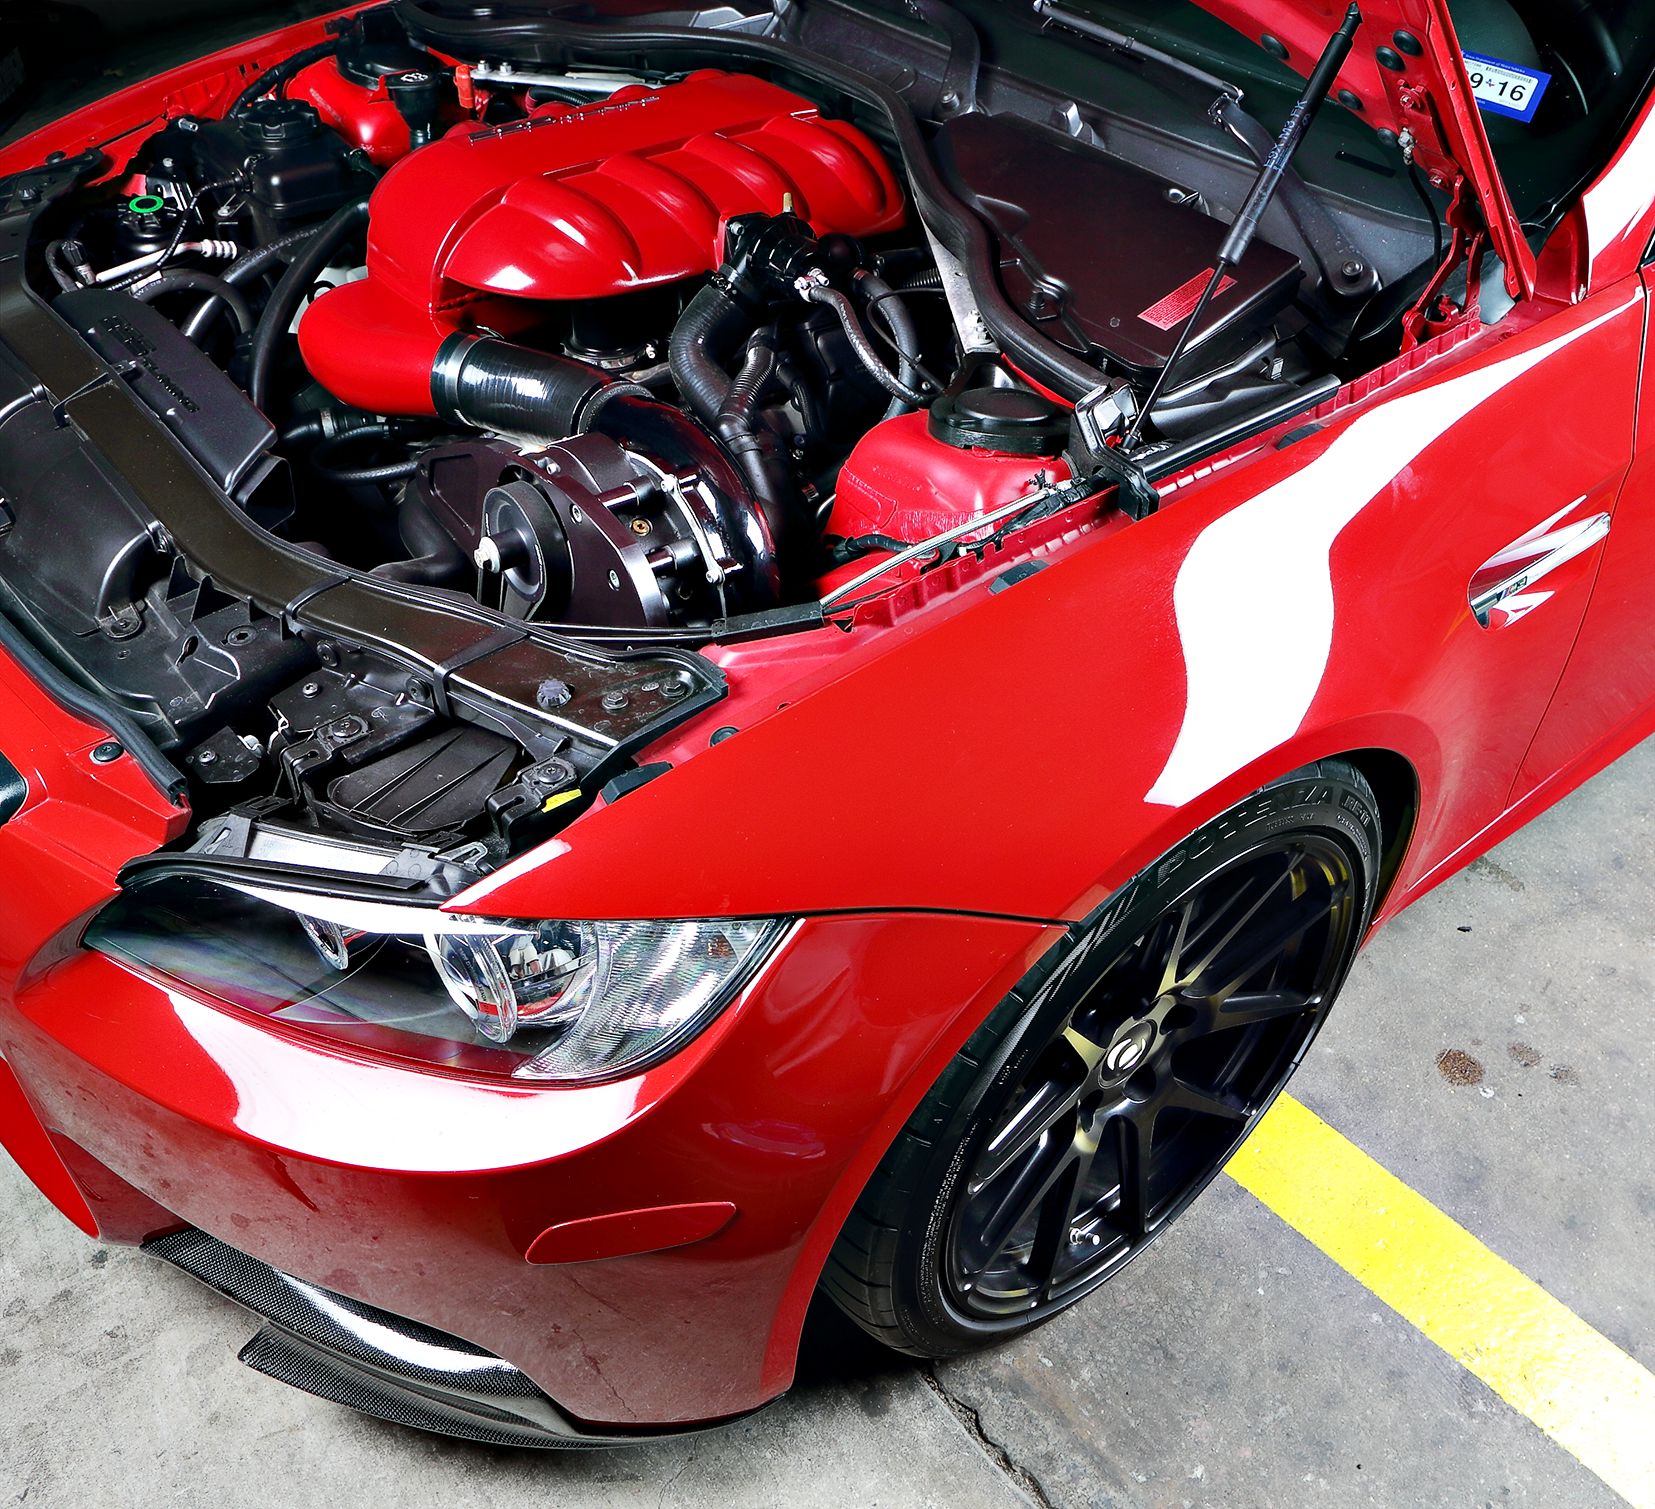 Aaron_E92_ESS_Tuning_supercharged_BMW_M3